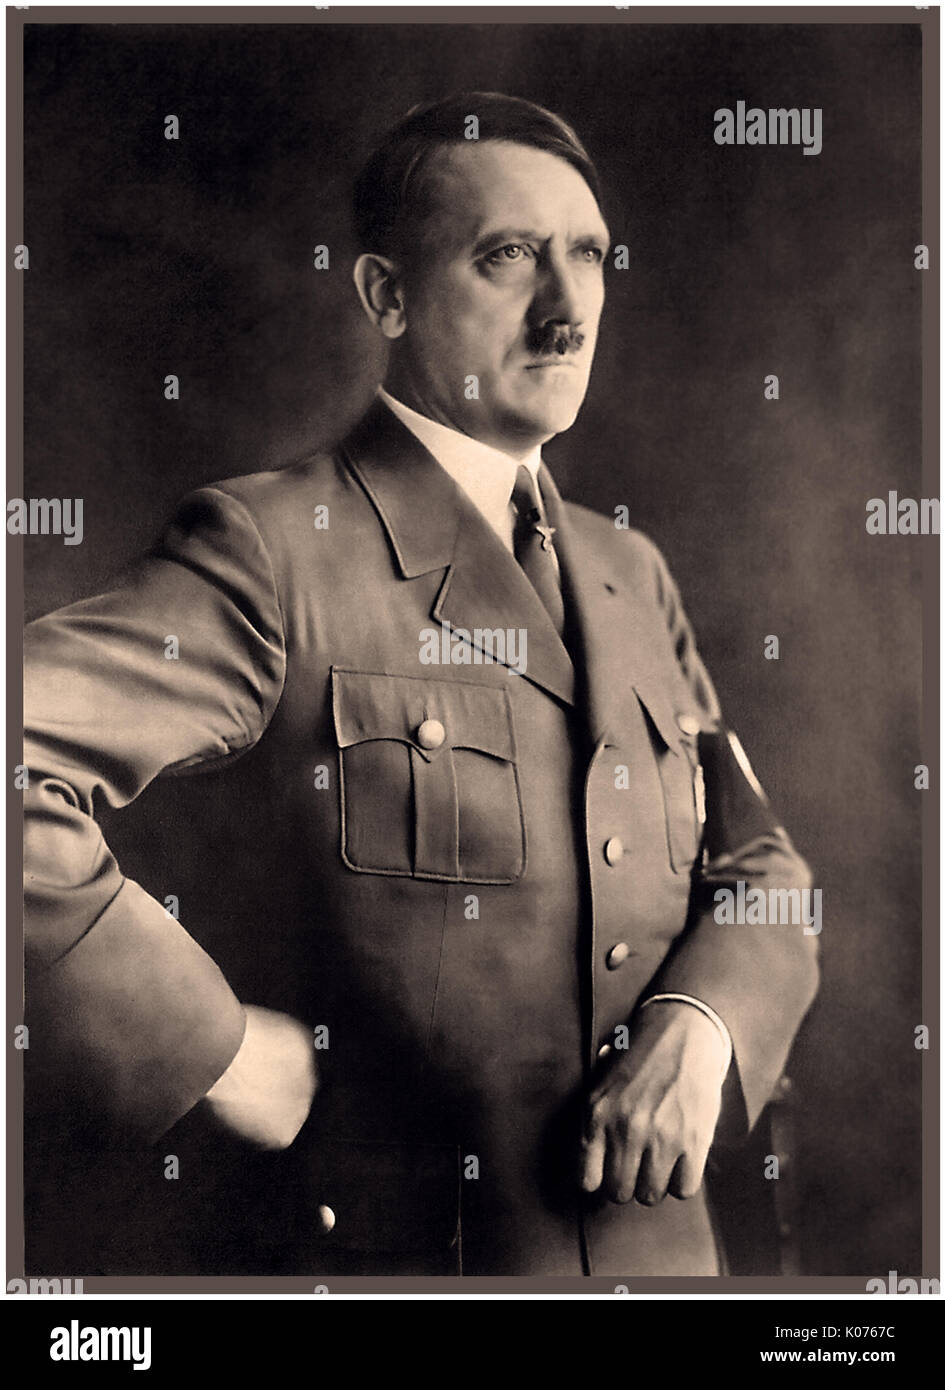 nazi germany and adolf hitler The gun laws of adolf hitler's nazi germany are often cited during debates on gun control in the united states, but should they be.